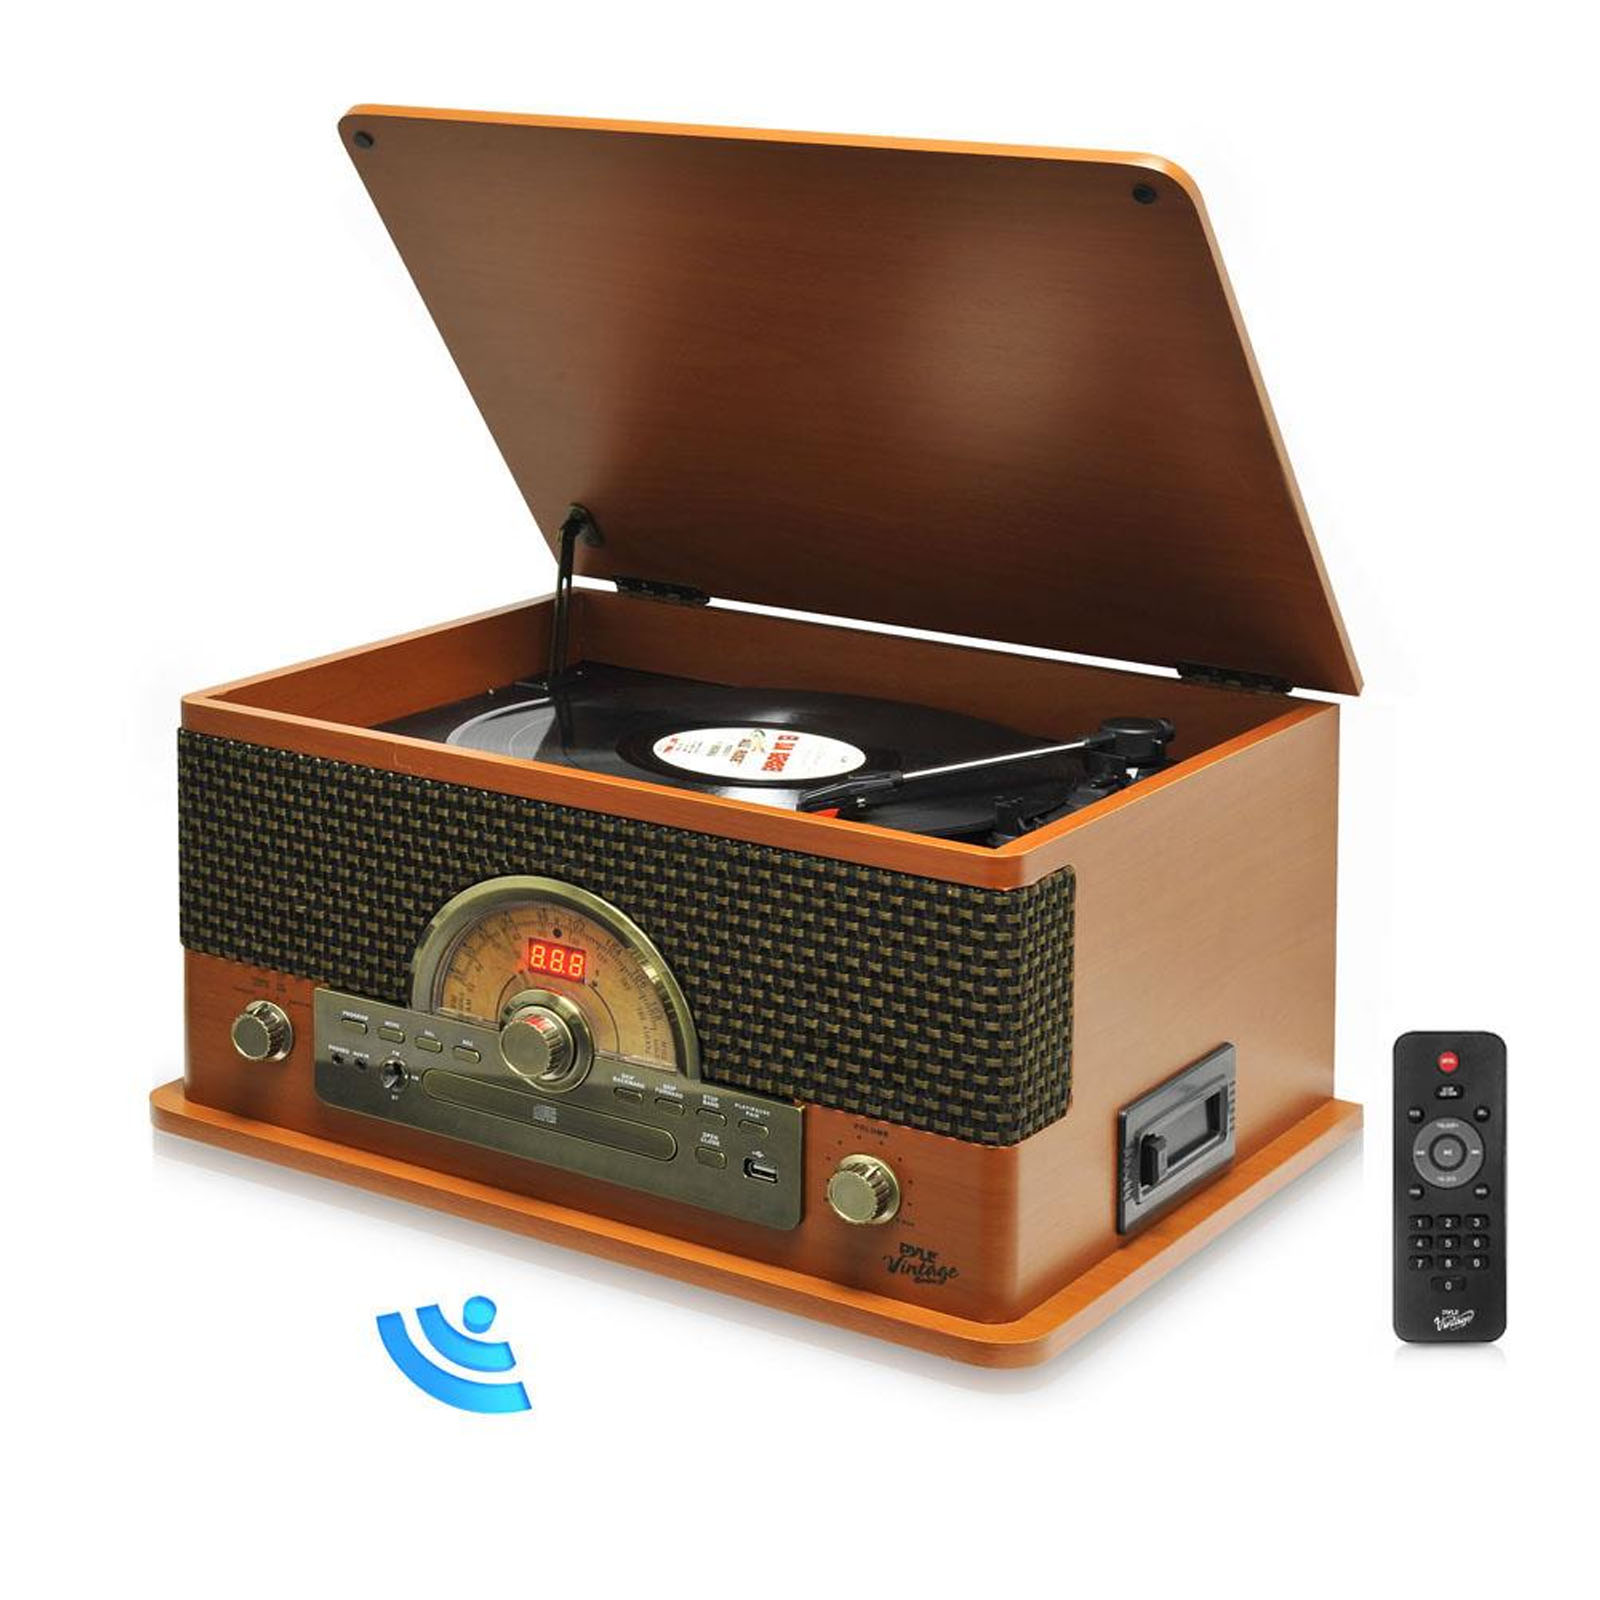 Pyle Vintage Retro Classic Style BT Turntable System with Vinyl/MP3 Recording Ability - Wood Style